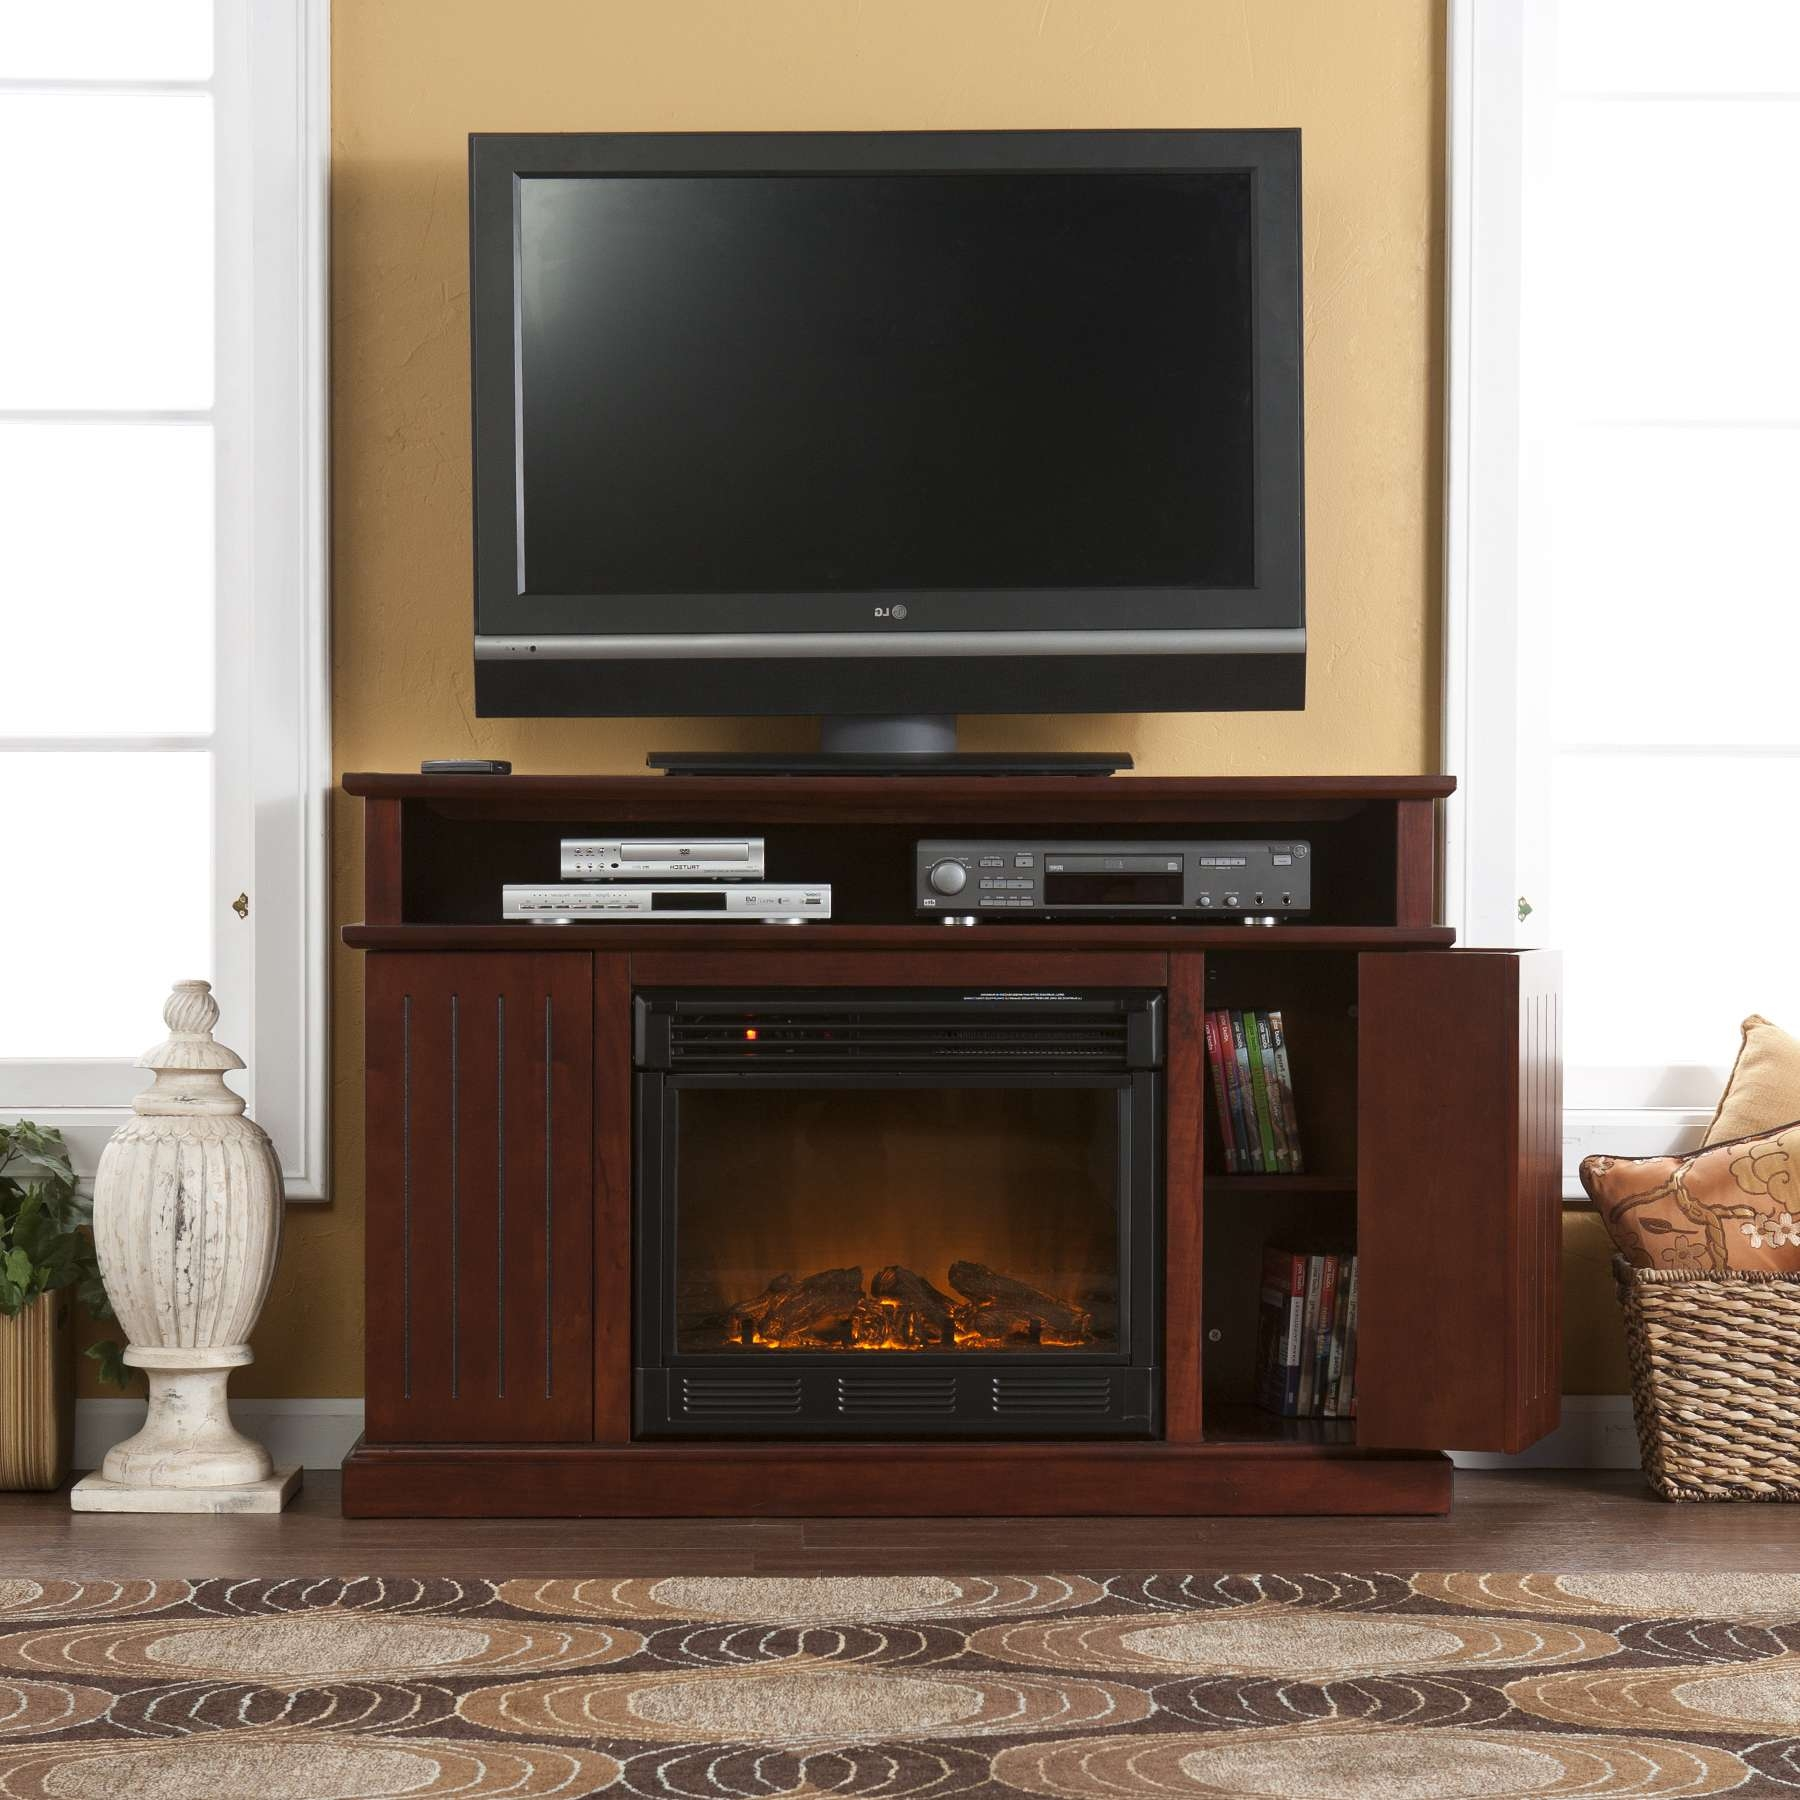 Cherry Wood Tv Stand With Electric Fireplace And Cd Storage Within Cherry Wood Tv Cabinets (View 3 of 20)